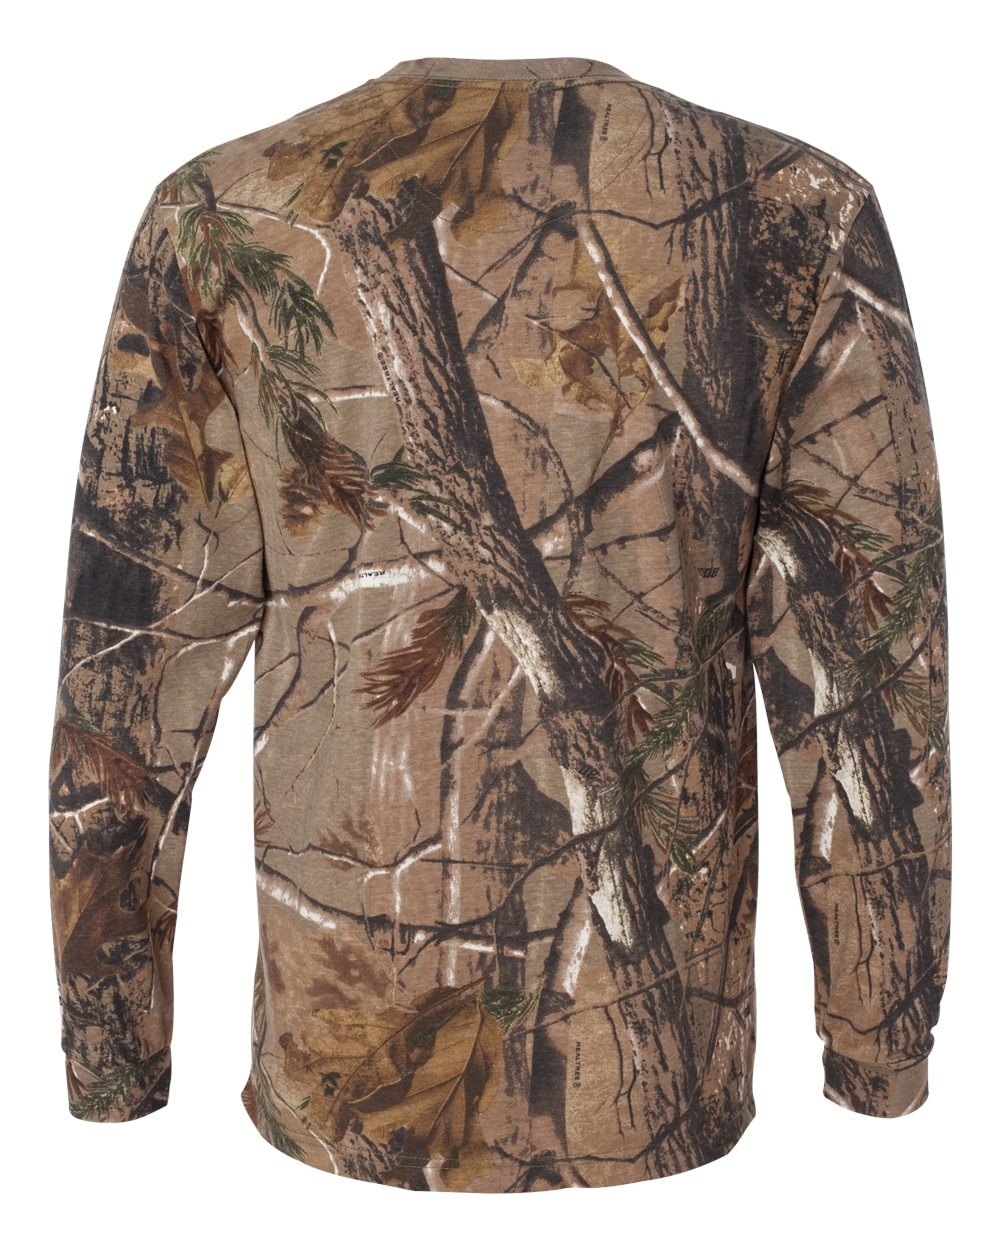 Code-Five-Mens-Adult-Realtree-Camo-Long-Sleeve-Tee-3981-up-to-3XL miniature 7